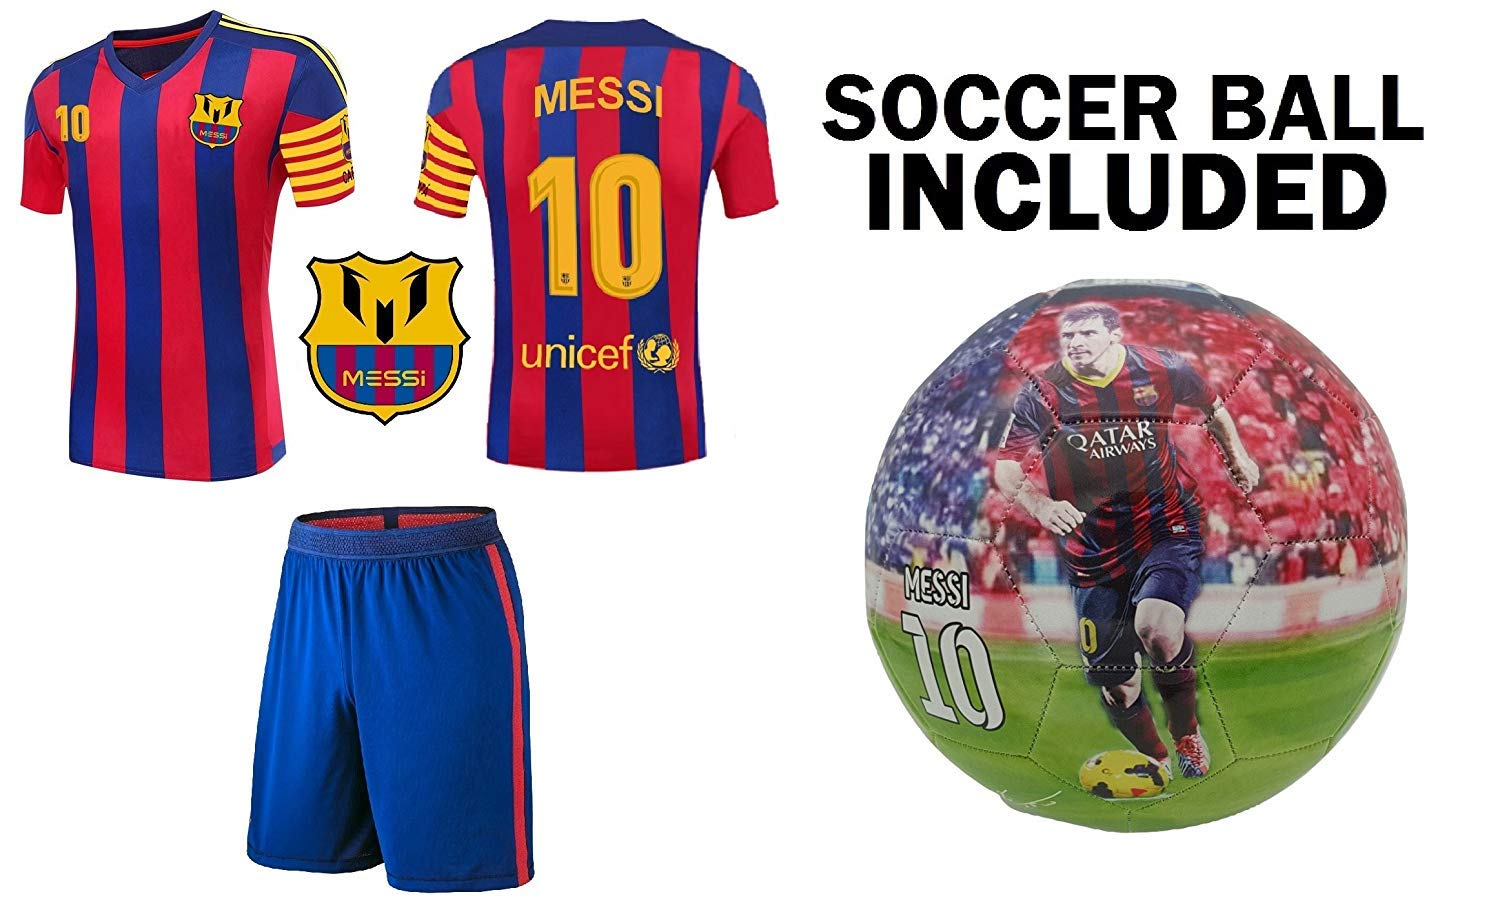 info for 99104 13c2a Lionel Messi #10 Soccer Jersey Youth - Premium Messi Jersey Gift Set for  Kids - Leo Messi Jersey + Shorts + Messi Ball Size 5 Football Futbol Gift  for ...